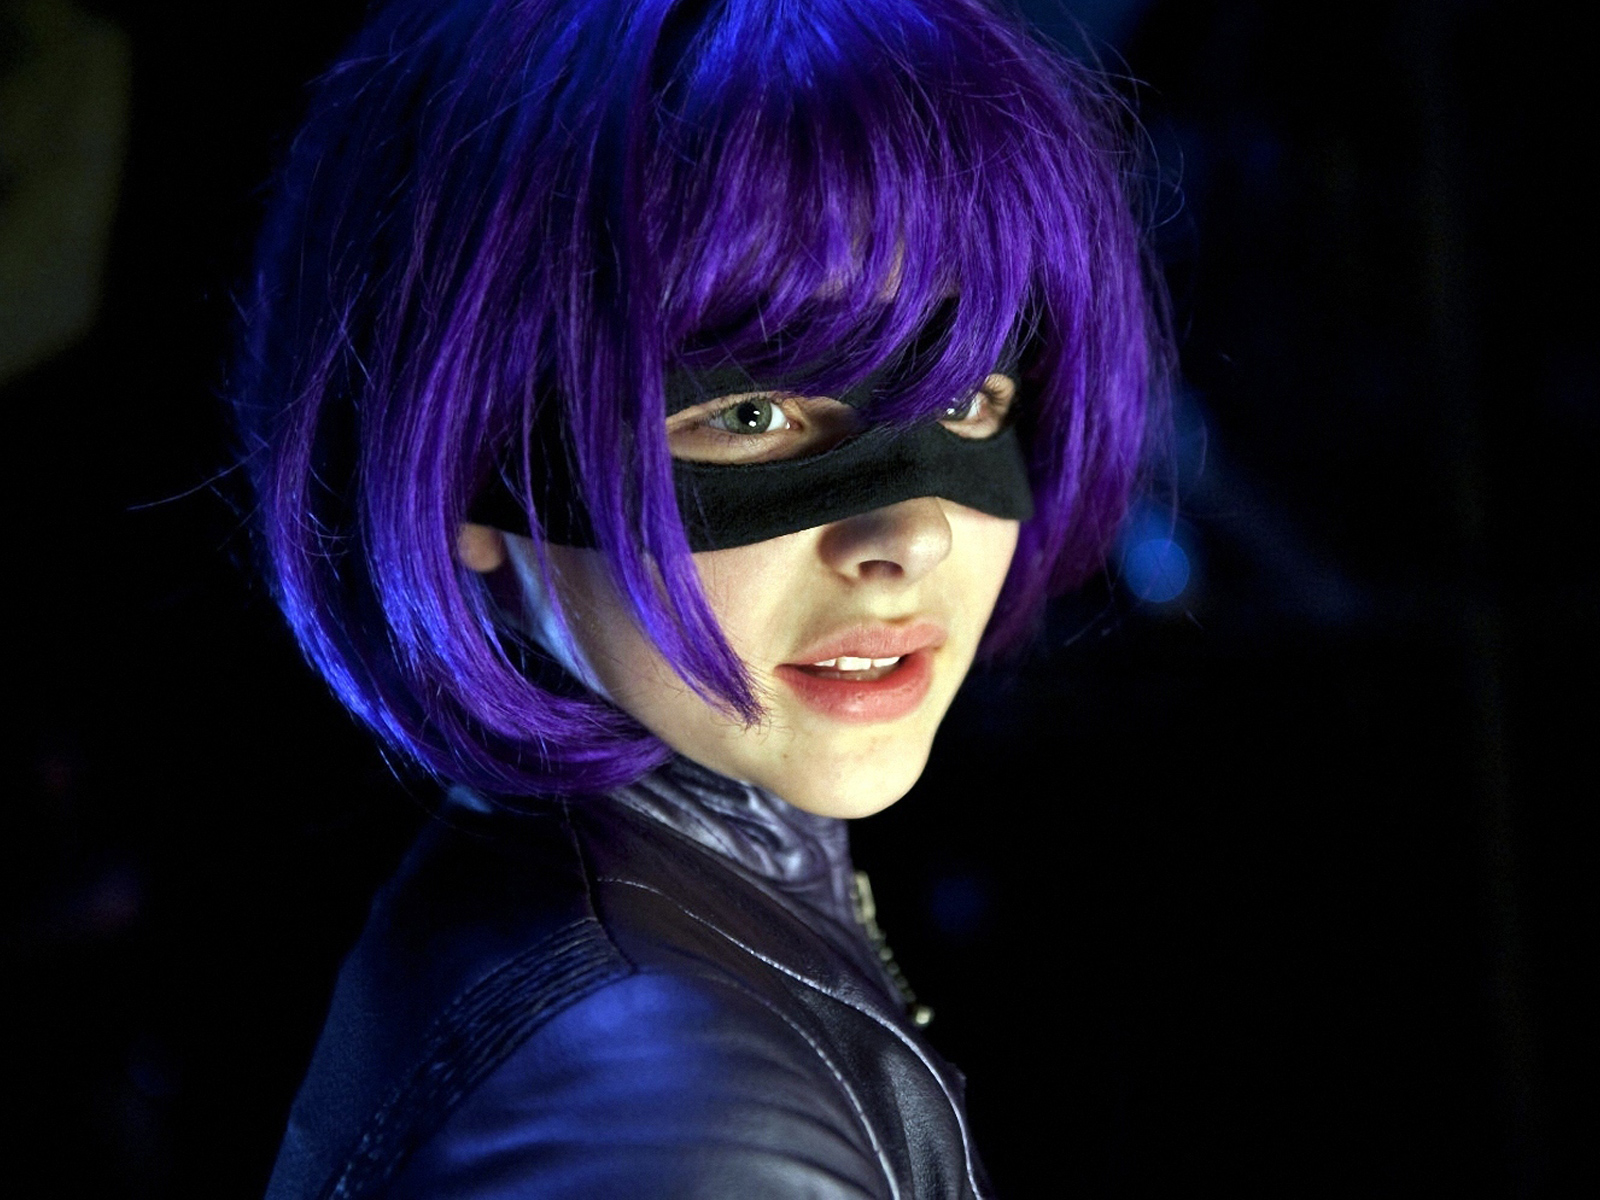 Kick Ass Hit Girl Chloe Moretz 478.01 Kb